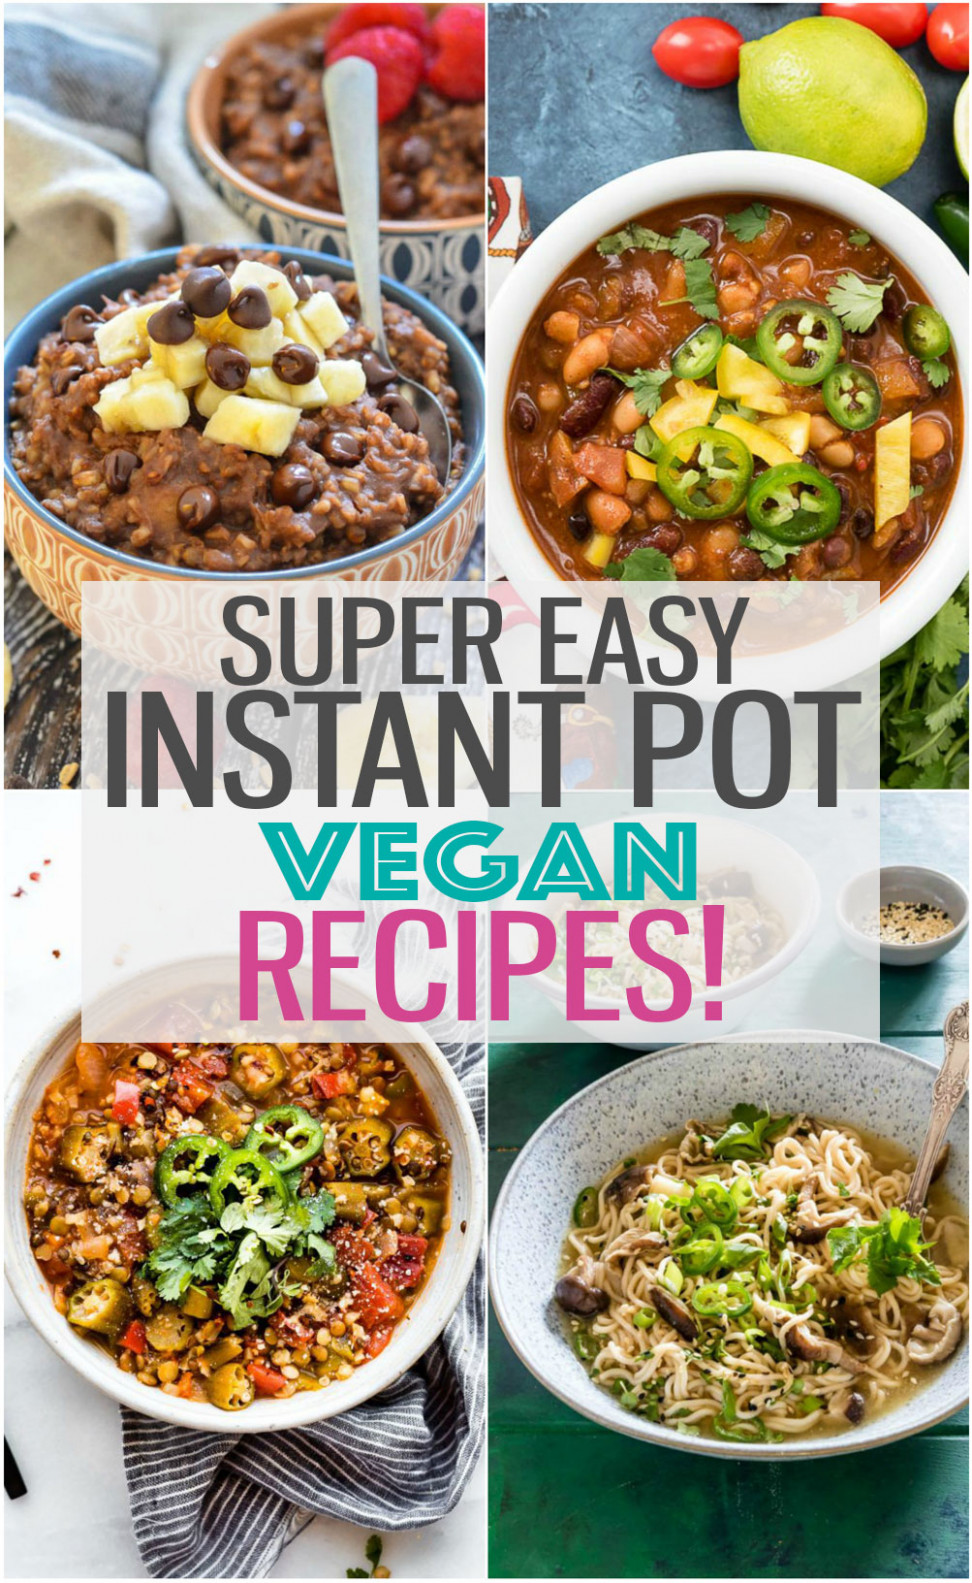 15 Ultimate Instant Pot Vegan Recipes - Eating Instantly - Instant Pot Recipes Dinner